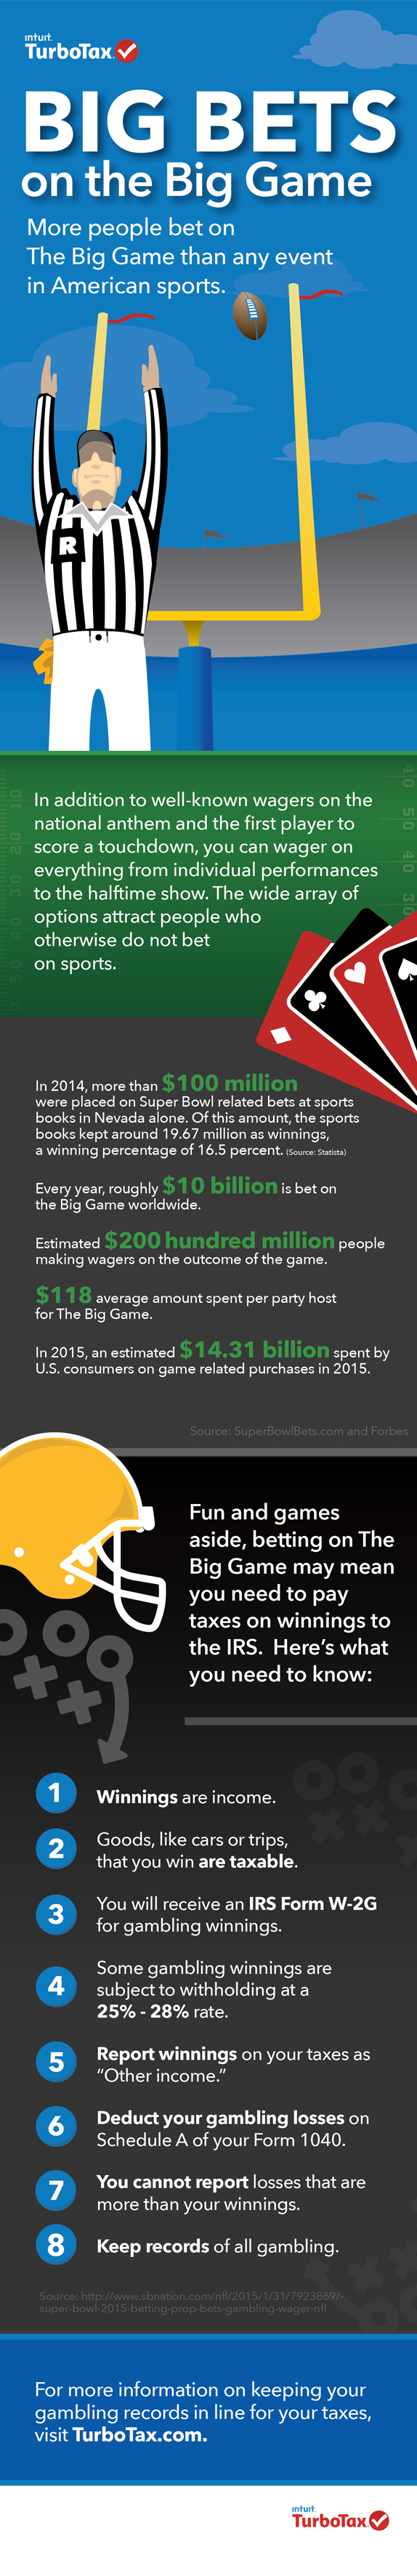 Where to find gambling losses on turbotax companies that build slot machines